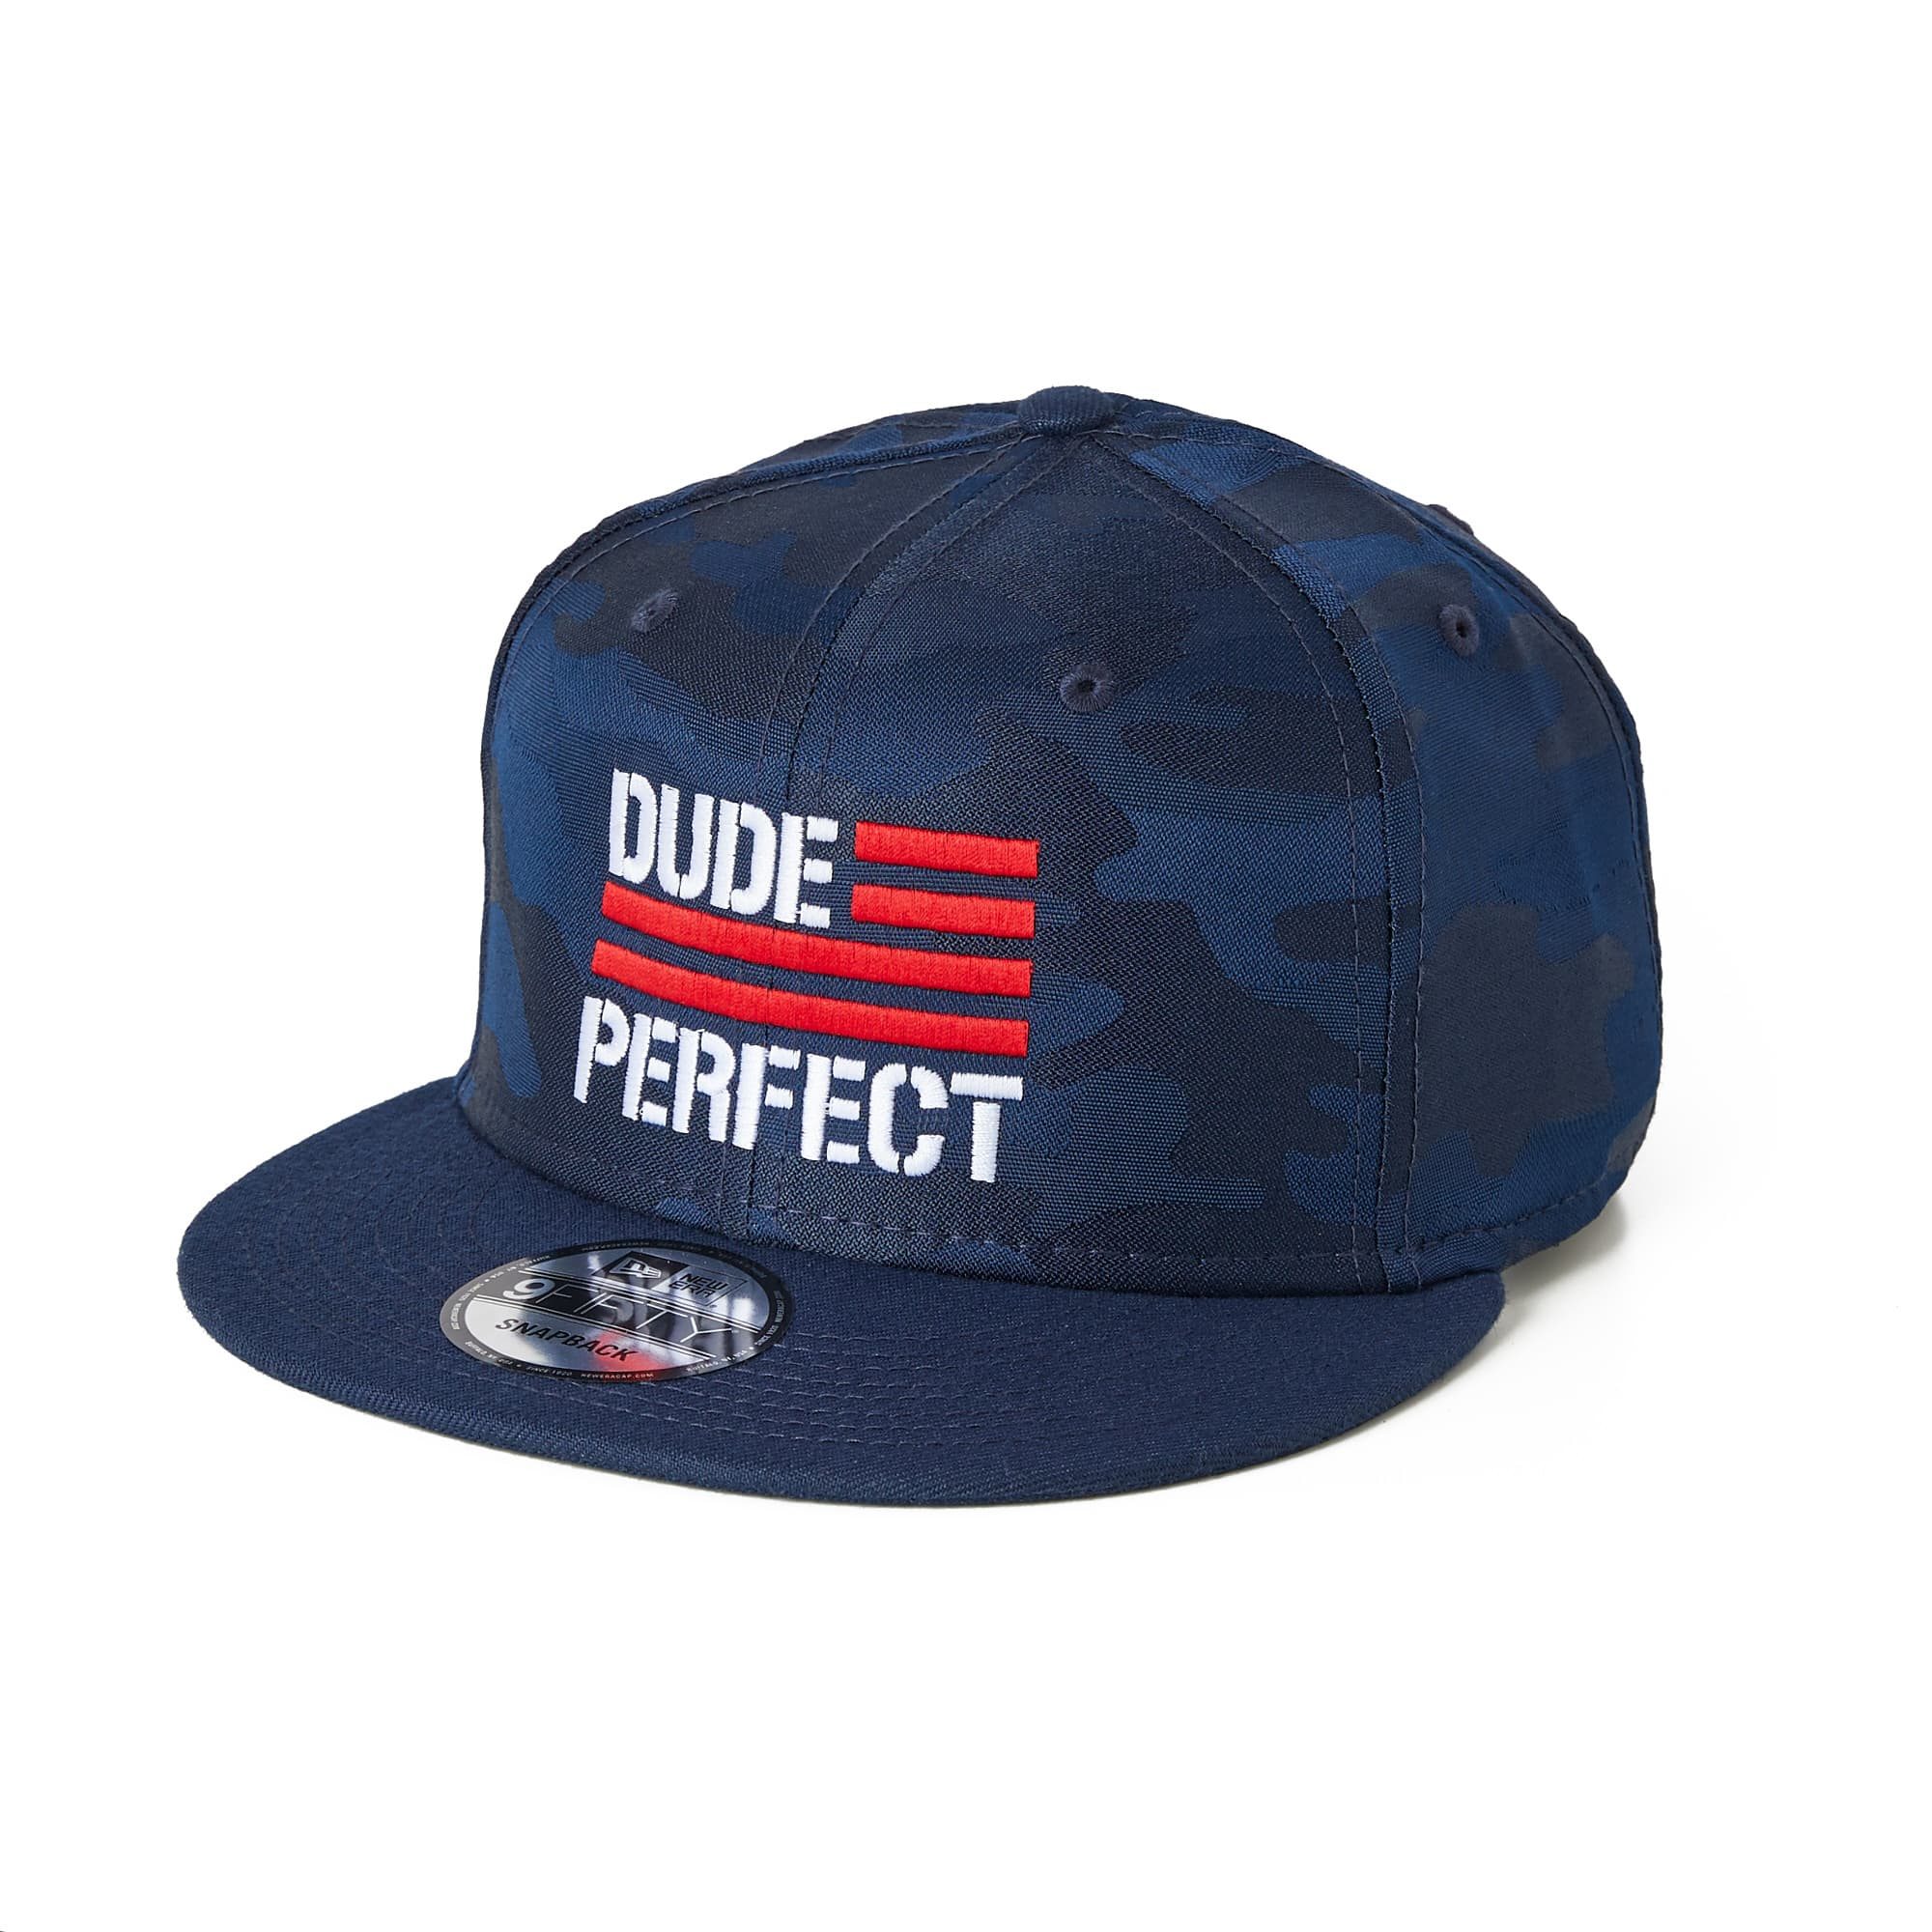 Stars and Stripes 5 x New Era 9Fifty Snapback Hat